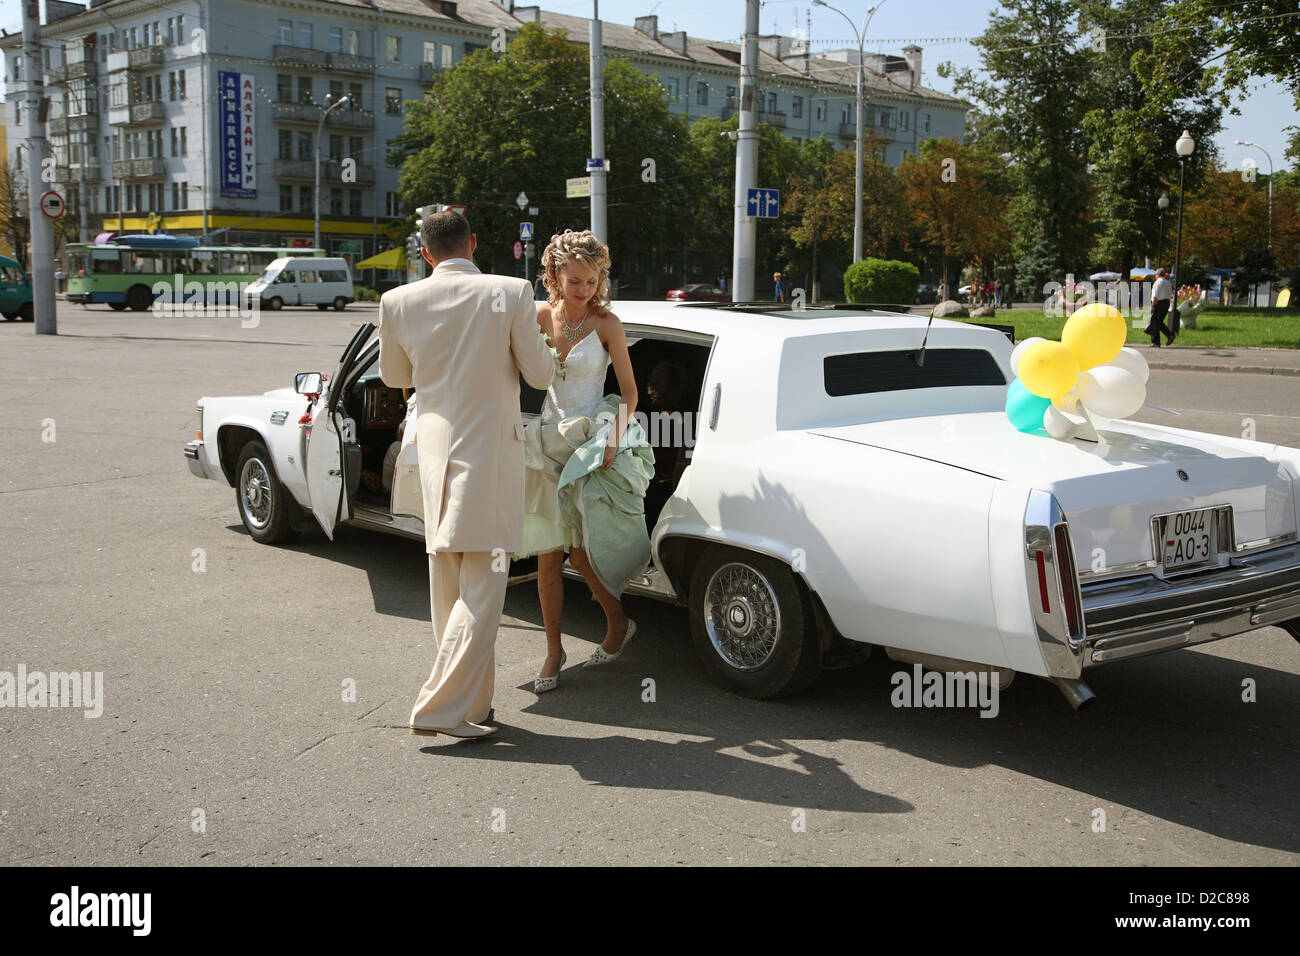 Gomel, Belarus, Hochzeitsgaeste rise from a rented limousine - Stock Image